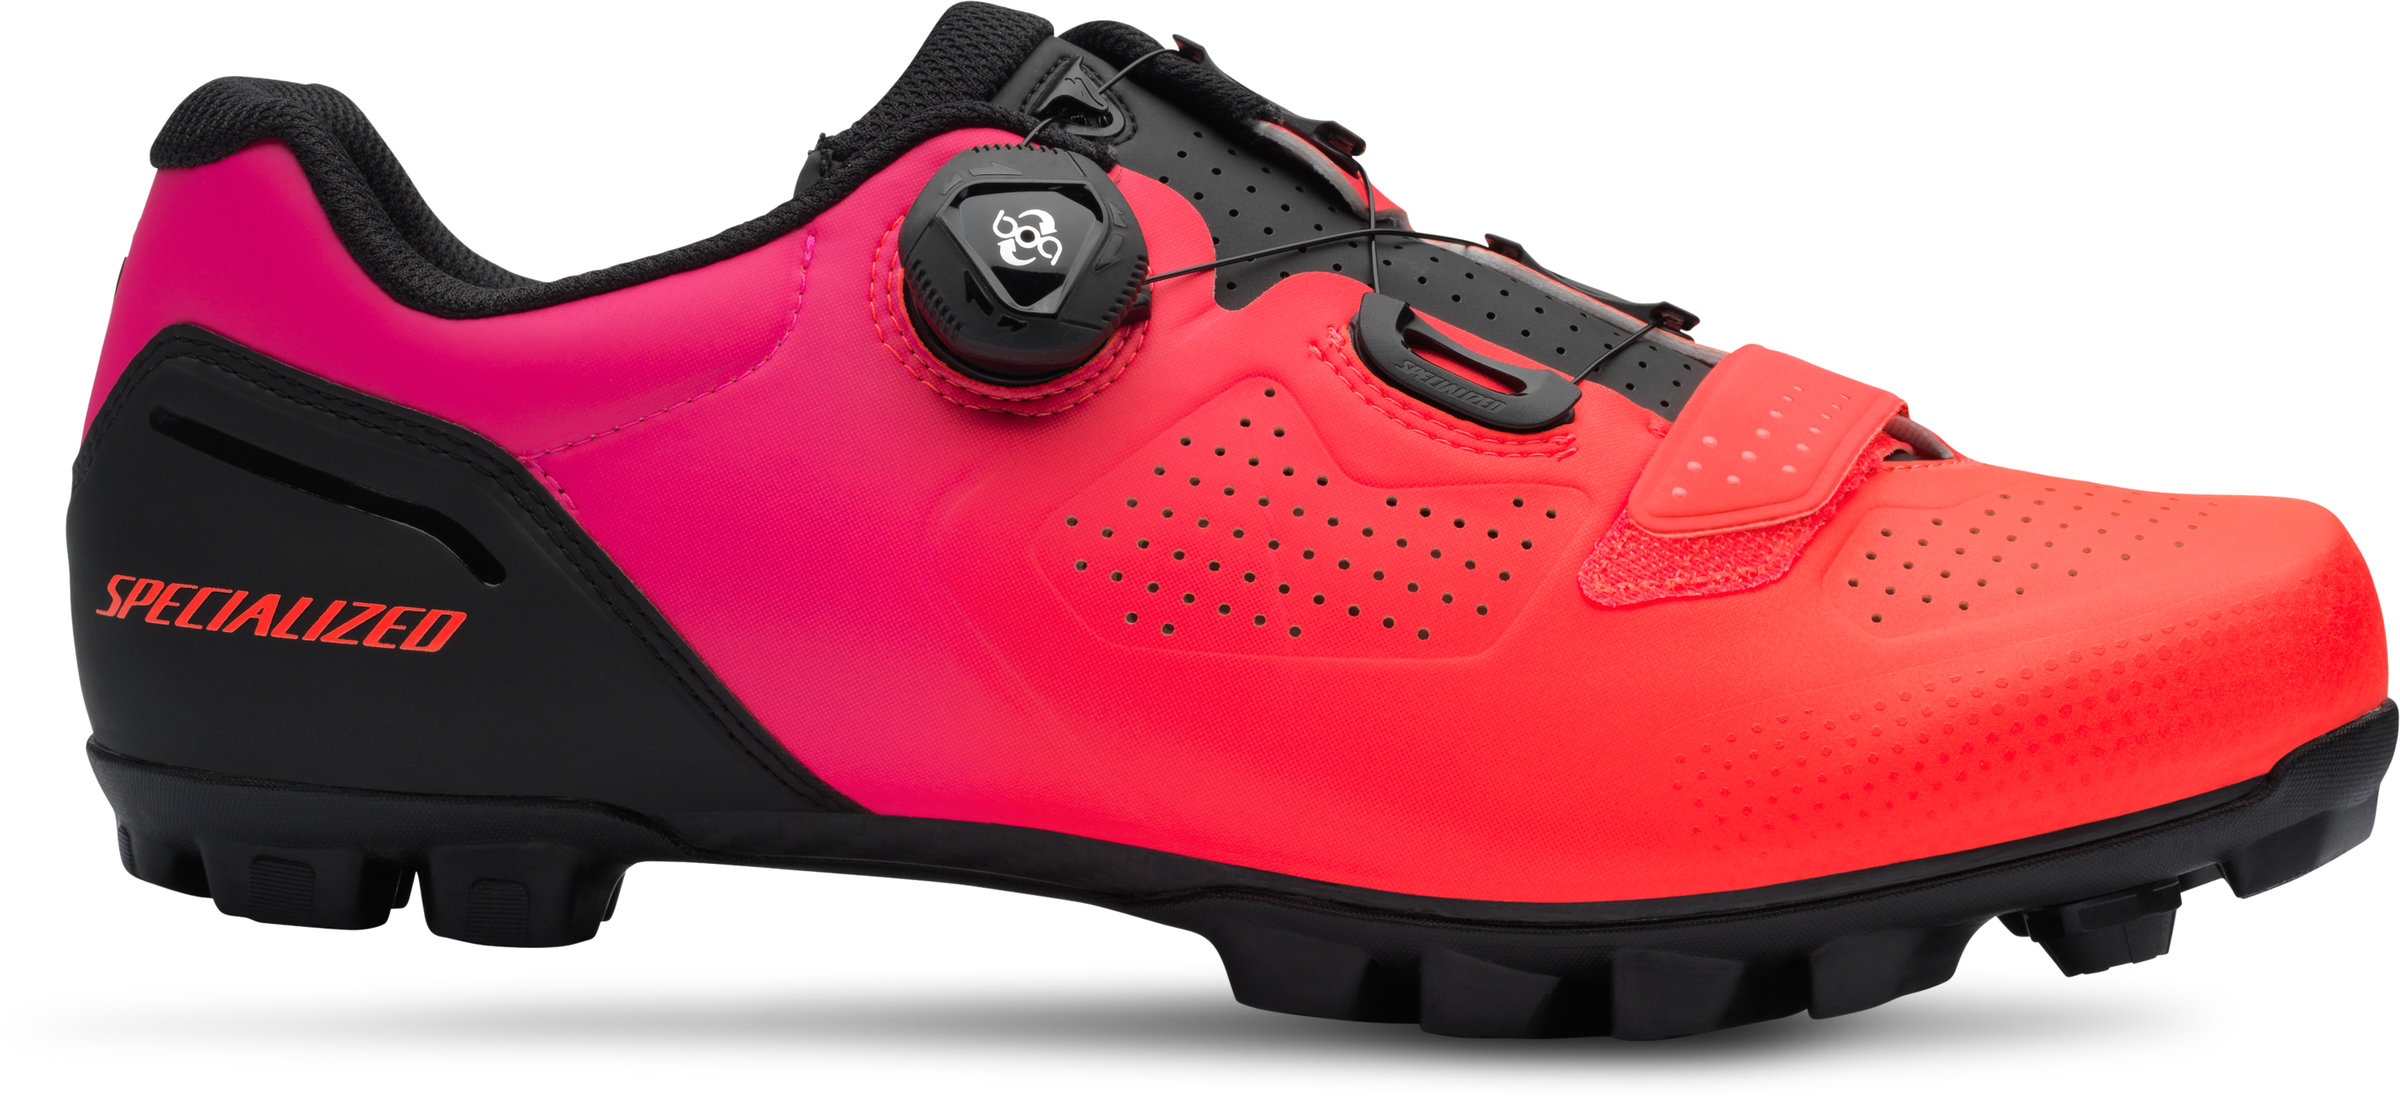 Specialized Expert Xc Mountain Bike Shoes Rock N Road